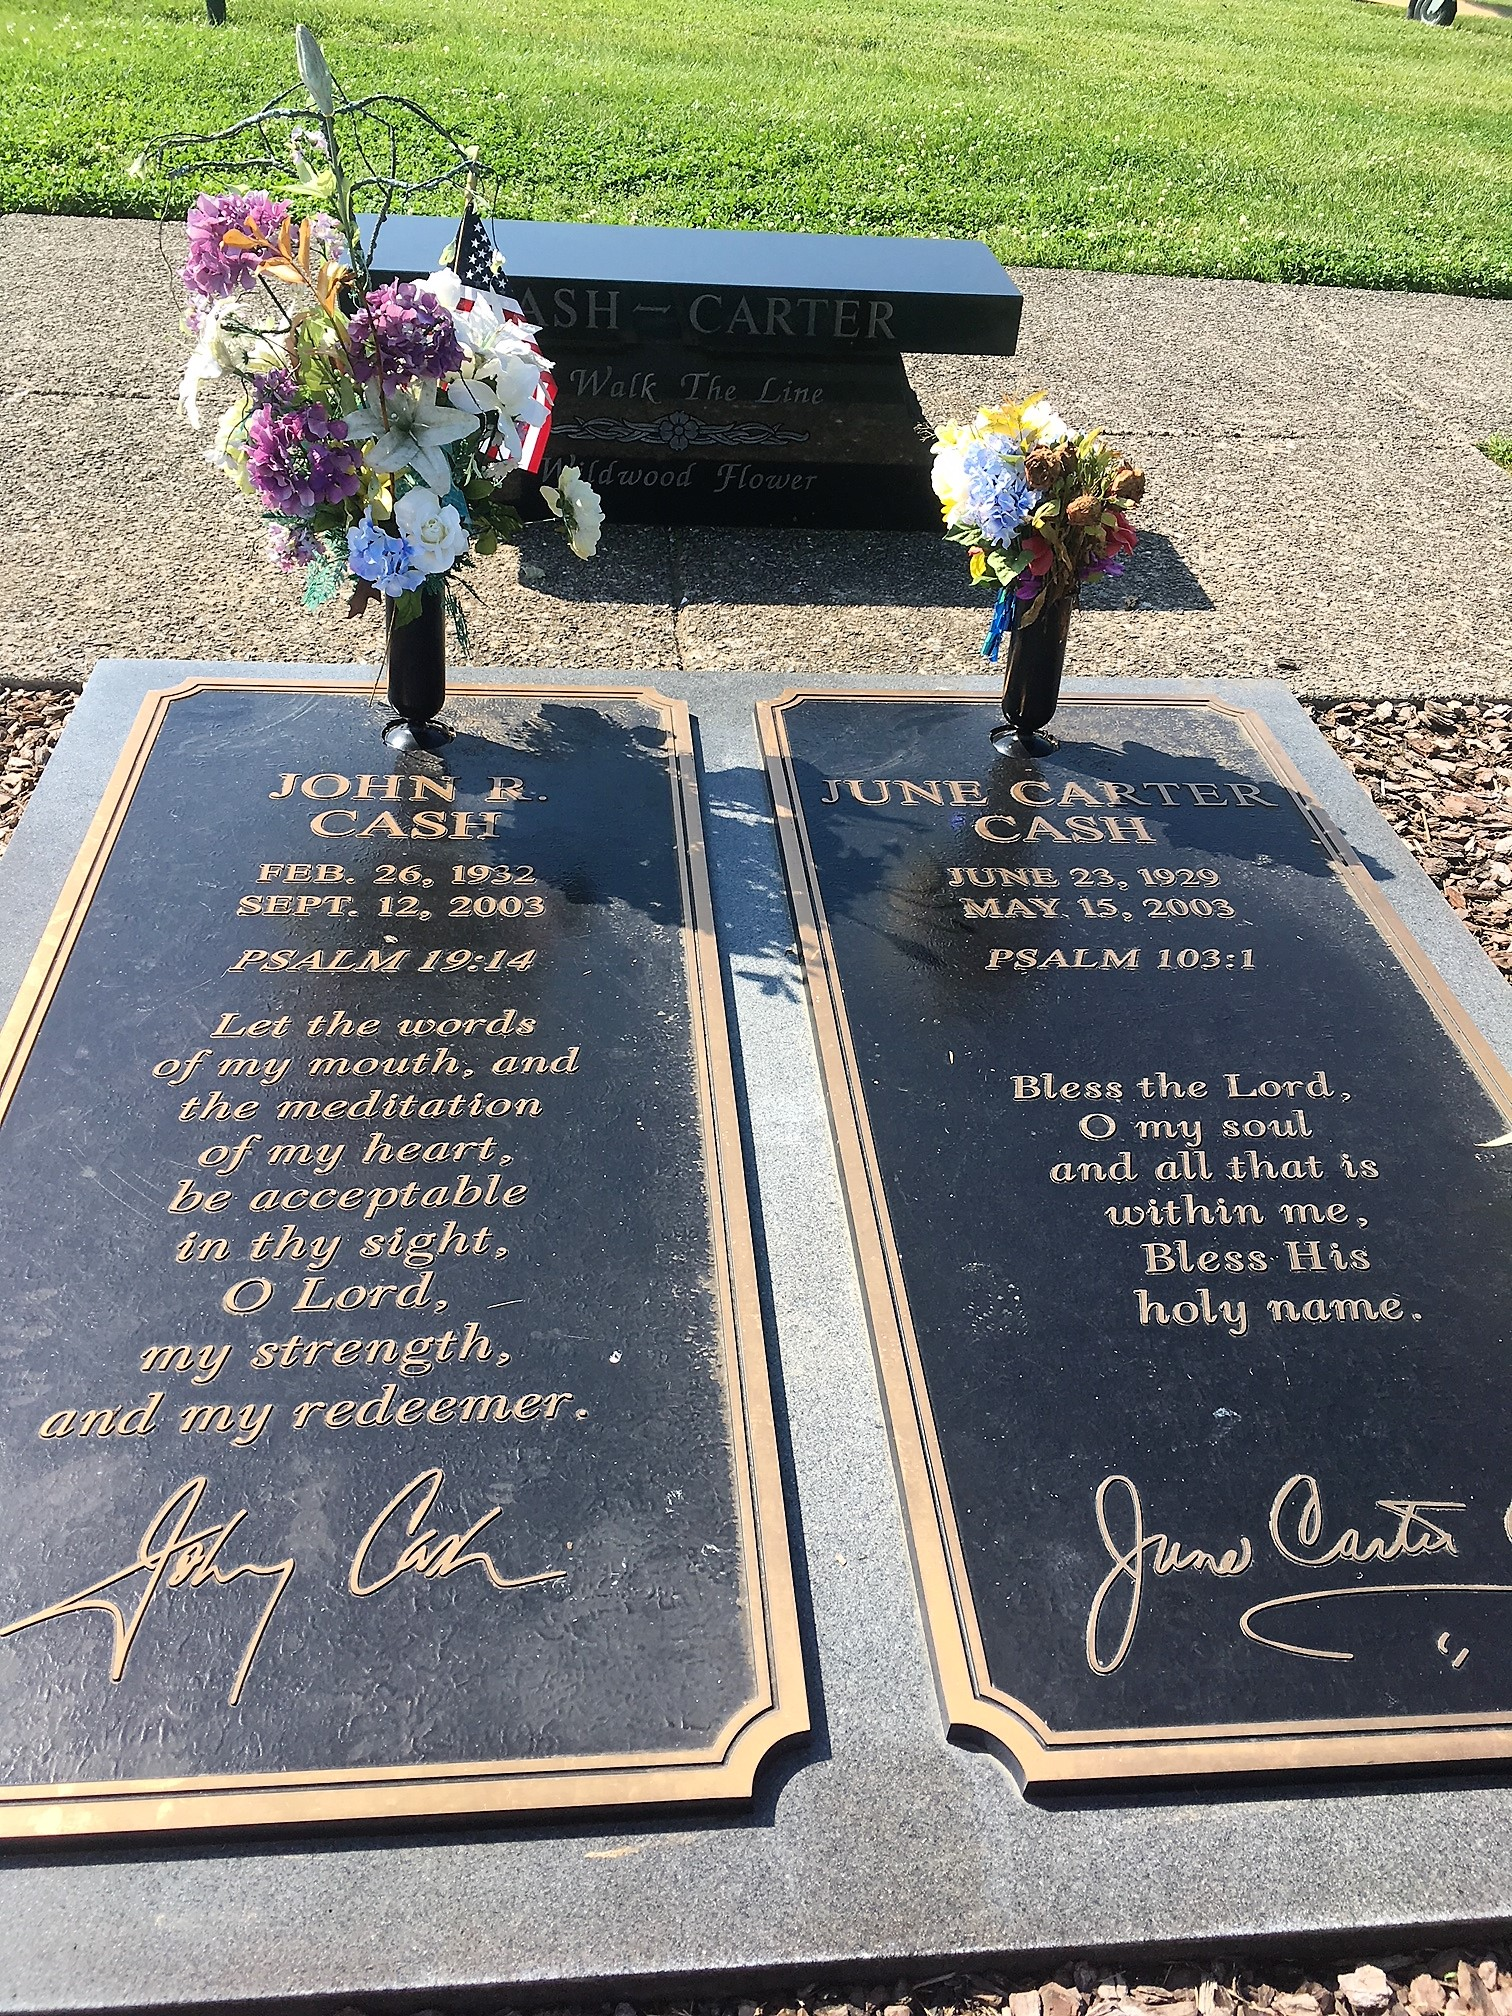 Johnny Cash burial site